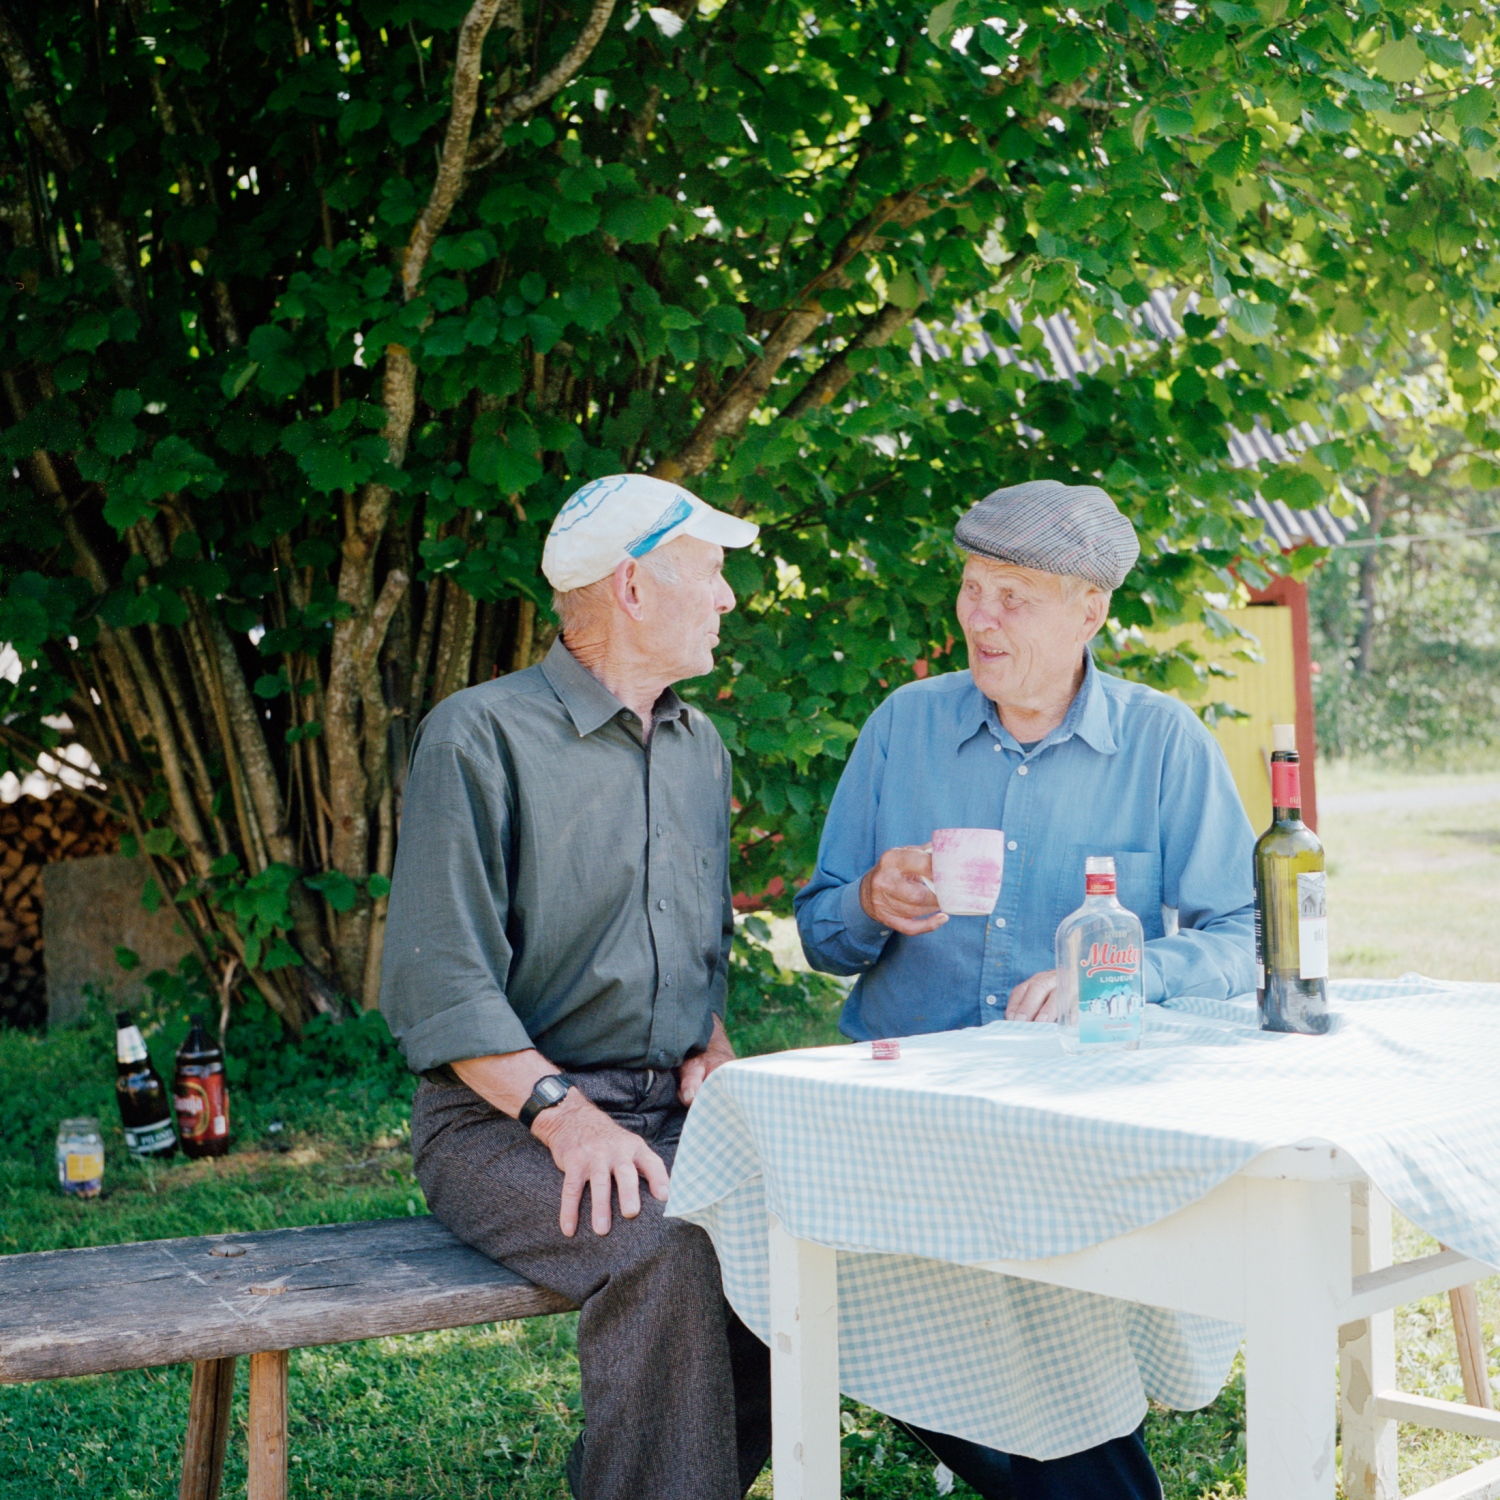 Mihkel Lilles (to the right) is having a chat with his friend Heino. Mihkel went fishing with his father for the first time when he was 6 years old. Today, he is 84 and still prepares his boat, even if he hasn't gone out to sea for the past six years. July 2014.